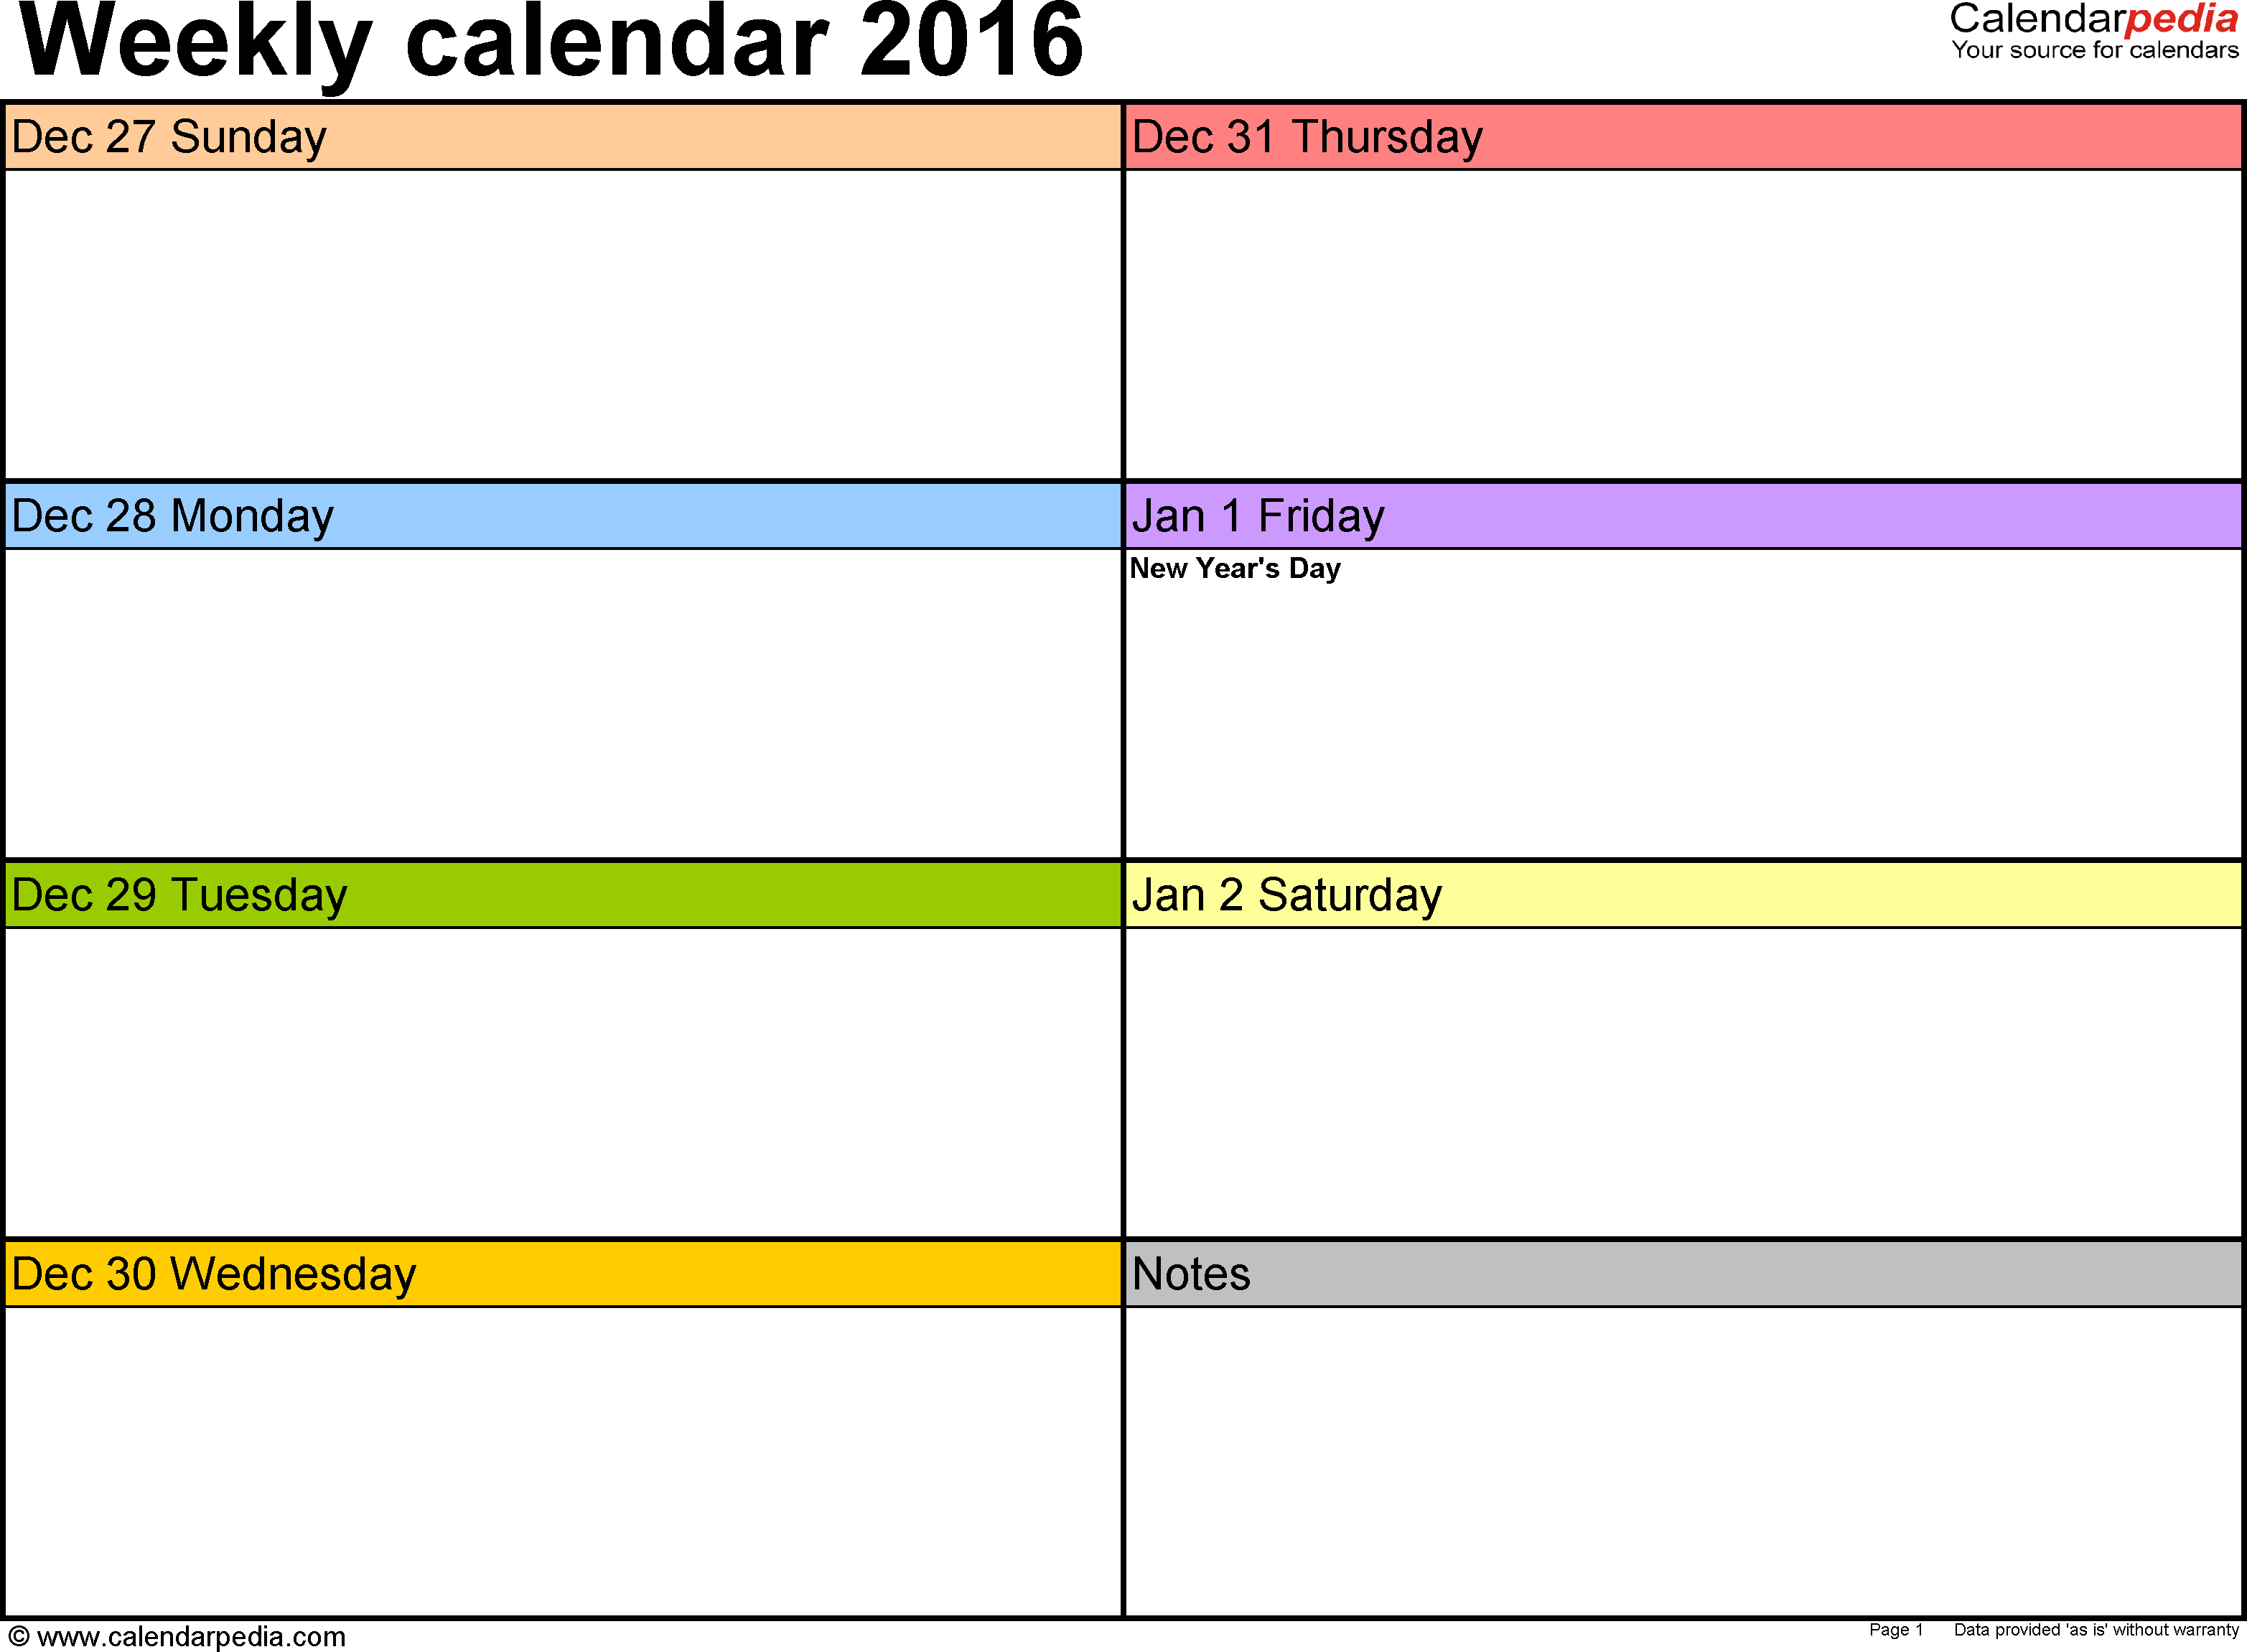 Weekly Calendar 2016: Template For Pdf Version 6, Landscape within Monday Through Friday Calendar Template Word